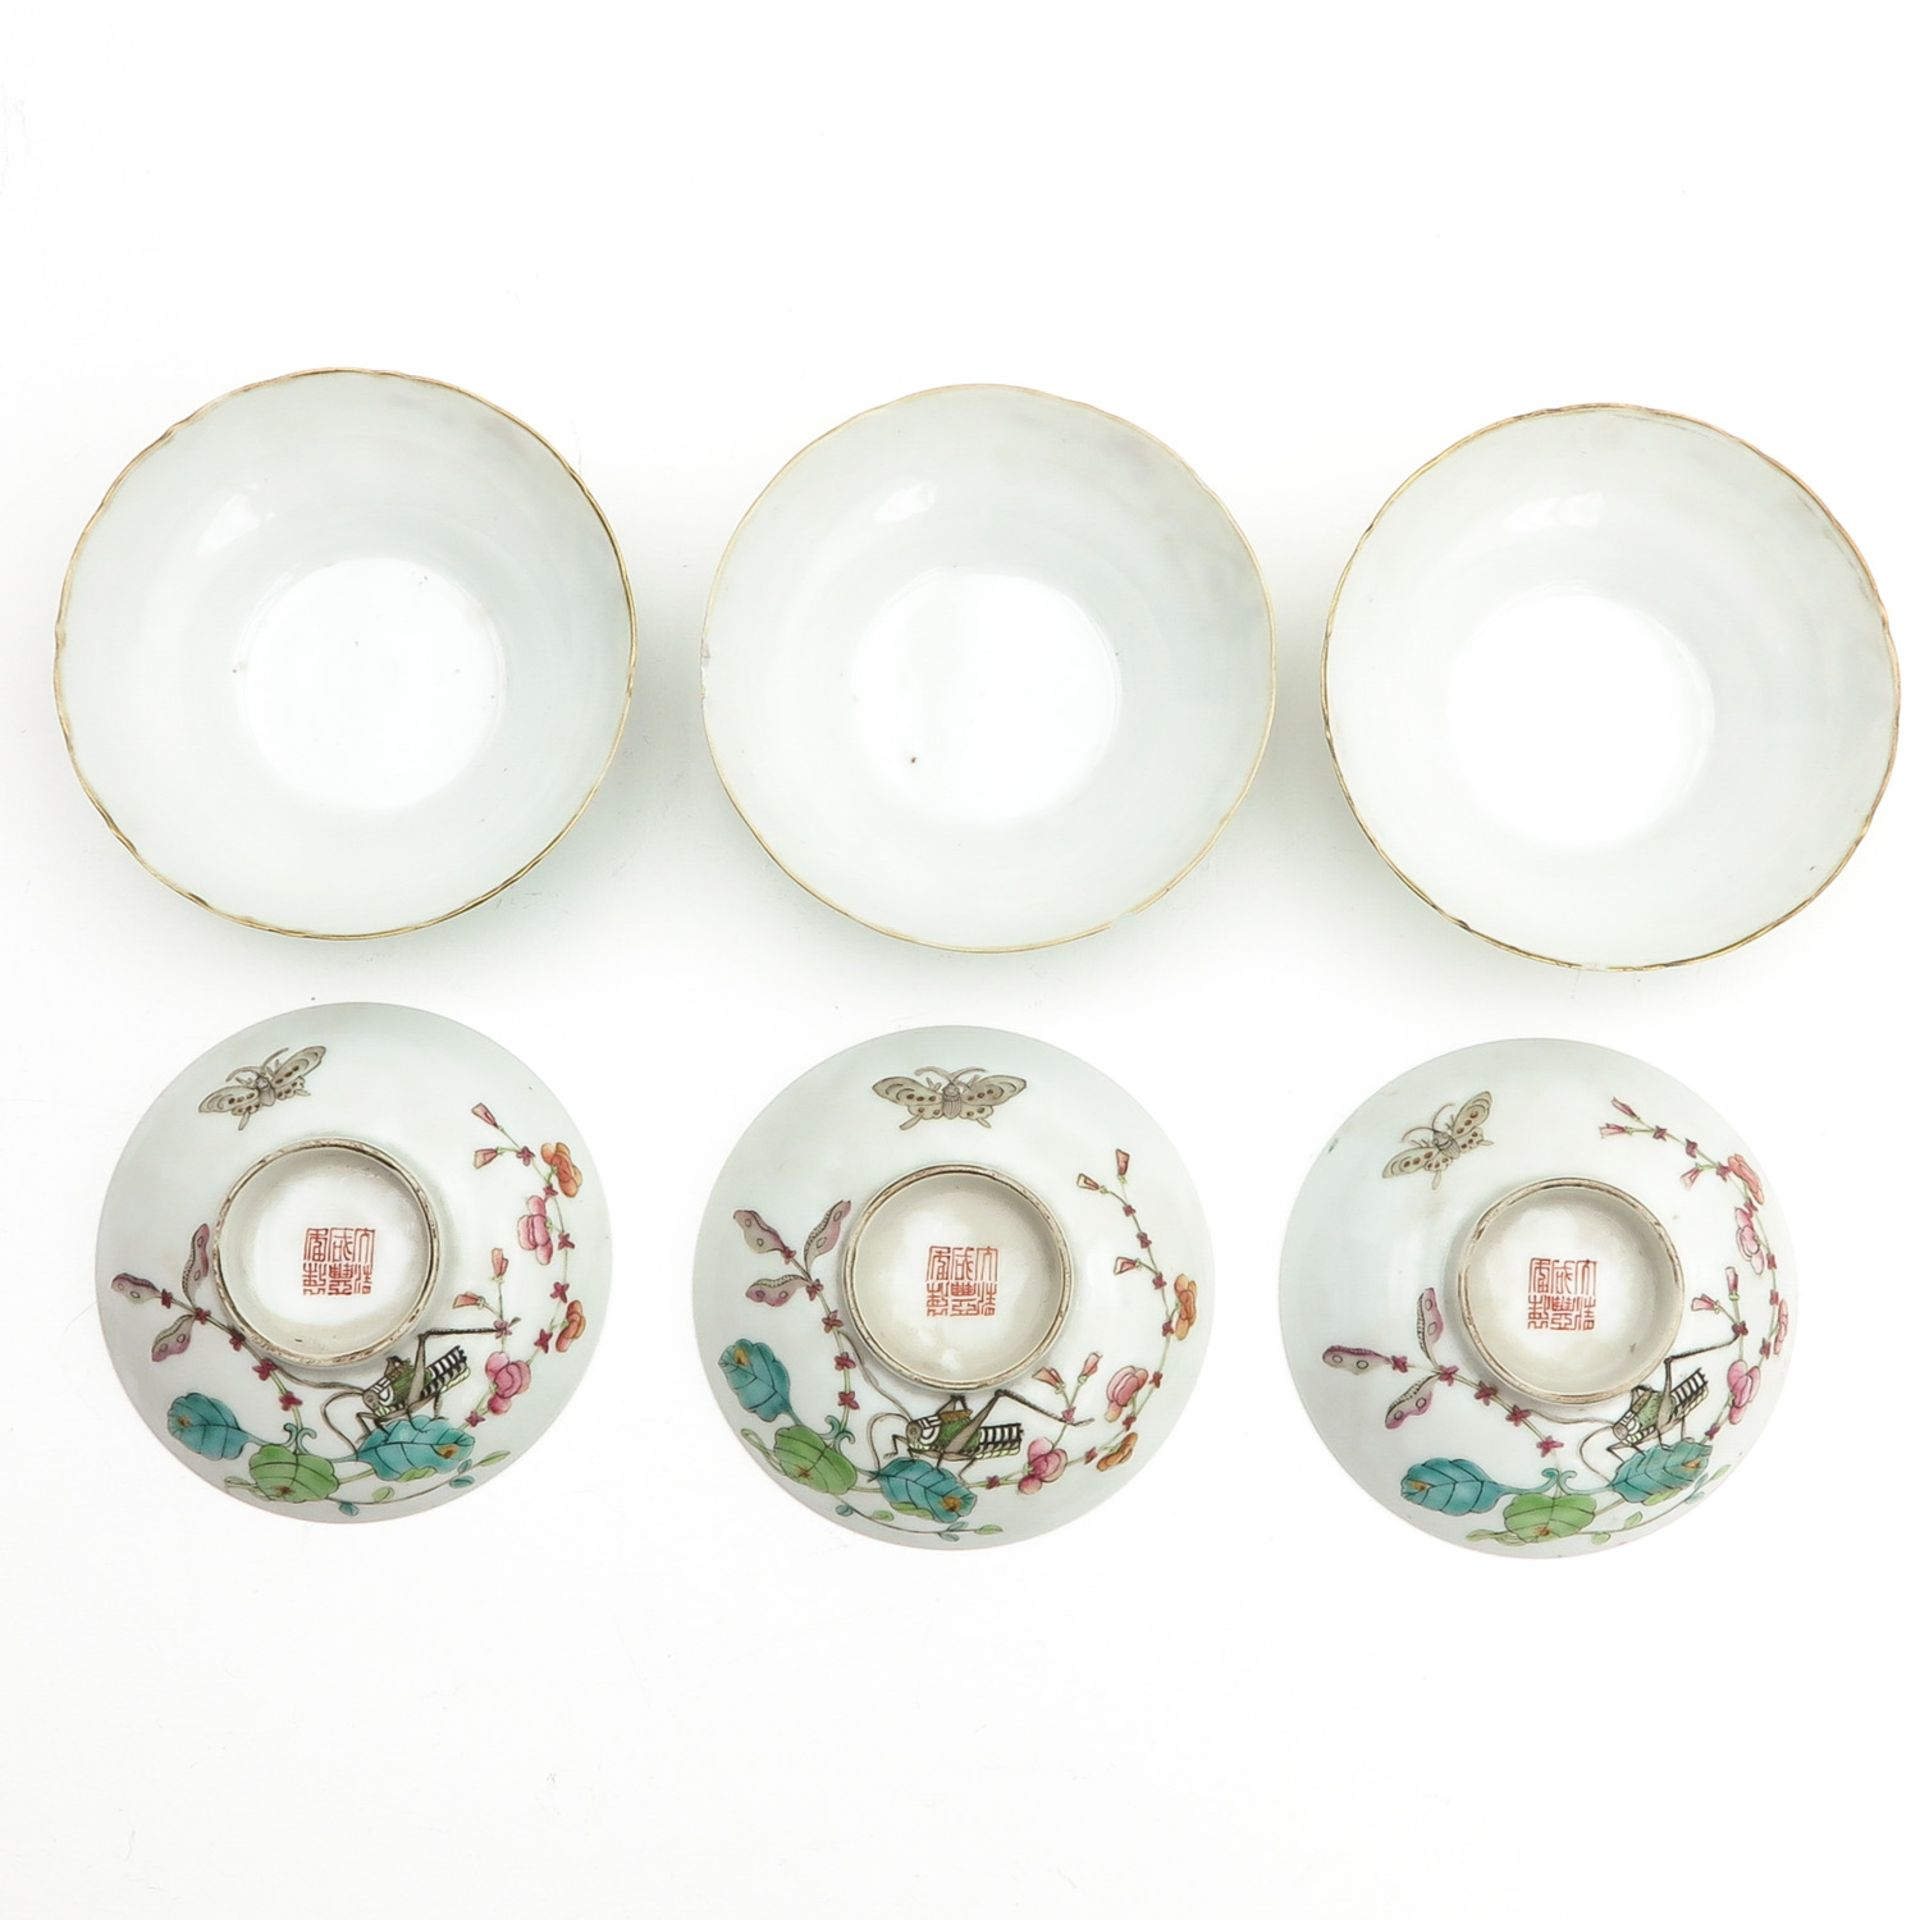 Los 7101 - A Collection of Three Covered Cups